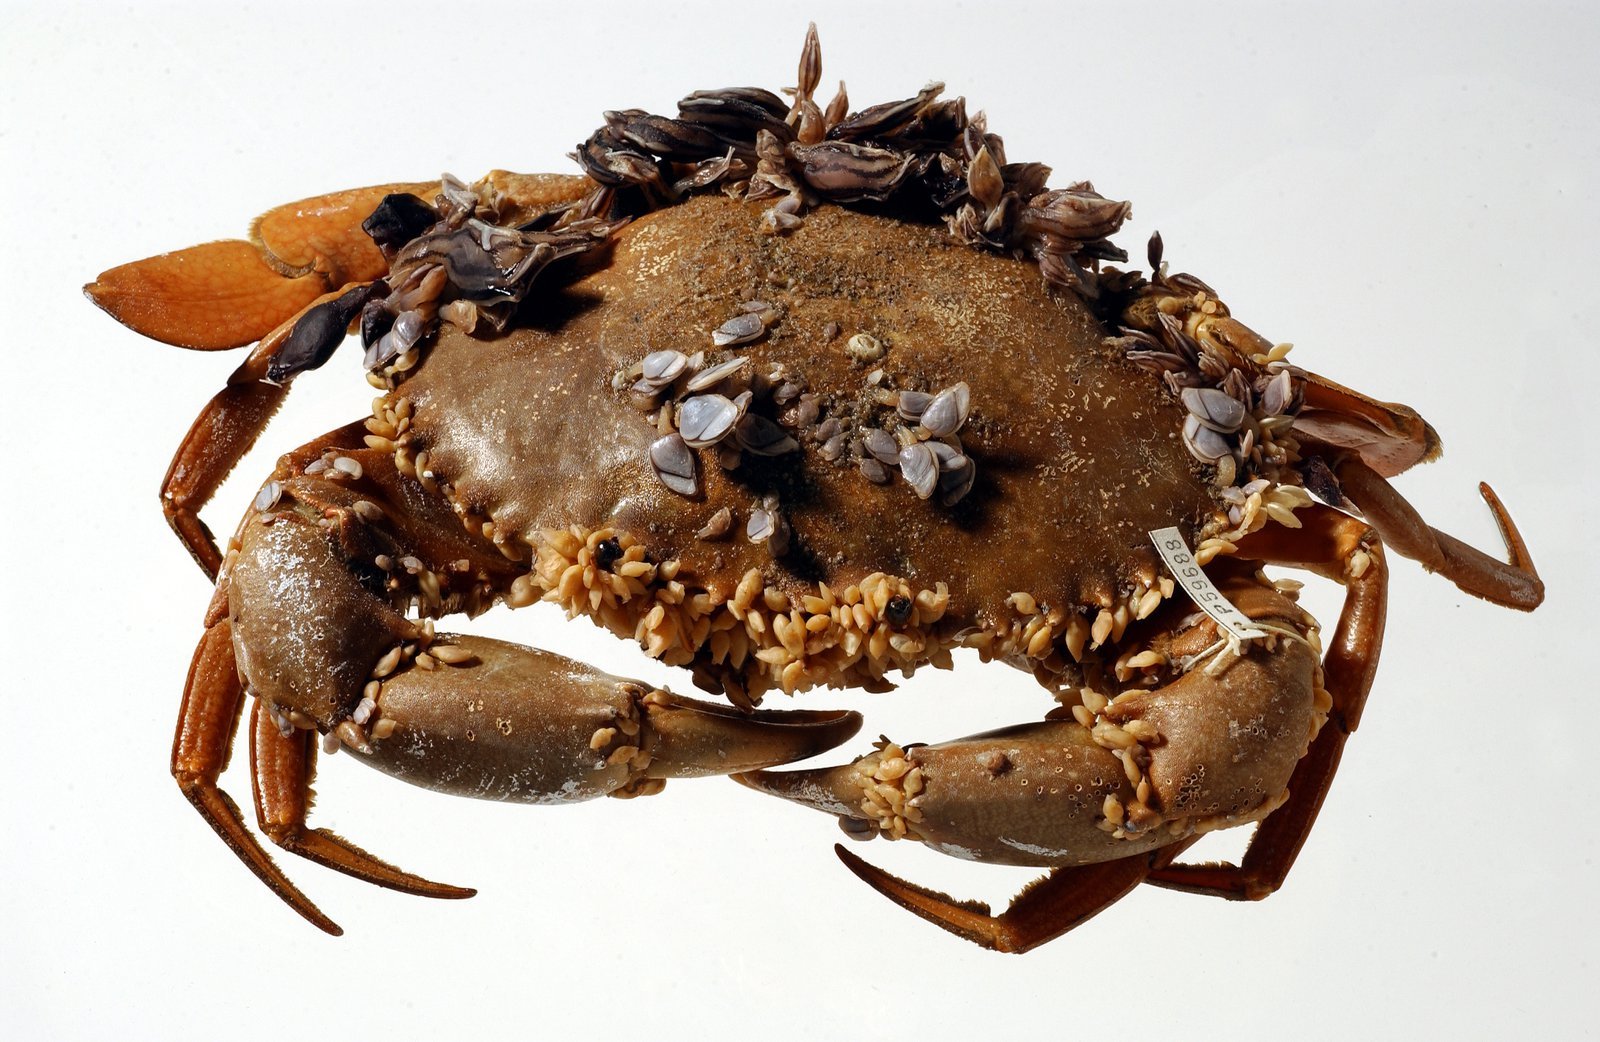 Mud Crabs at Sea - The Australian Museum